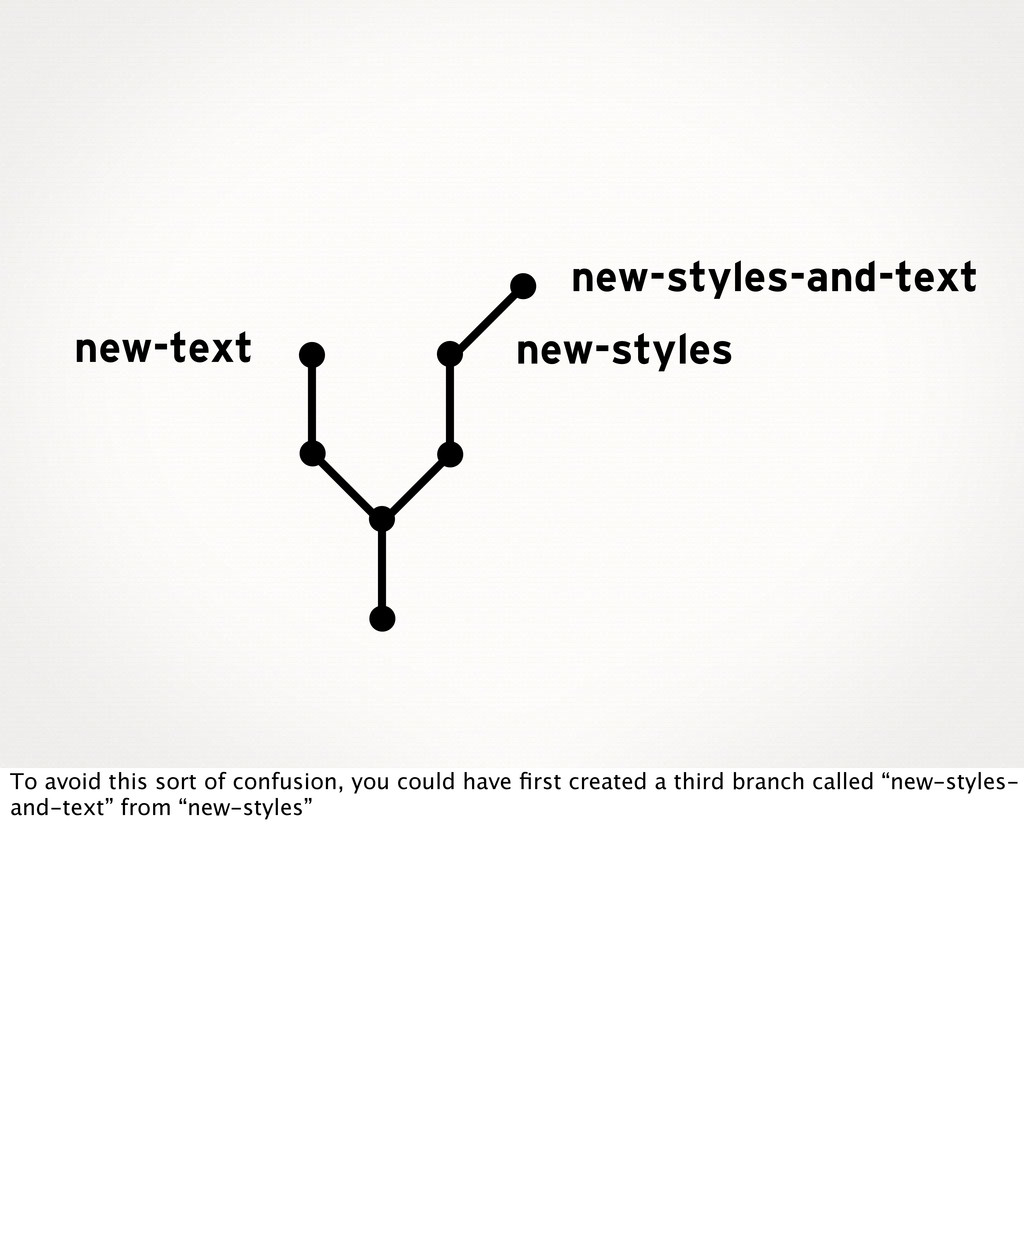 new-styles new-text new-styles-and-text To avoi...